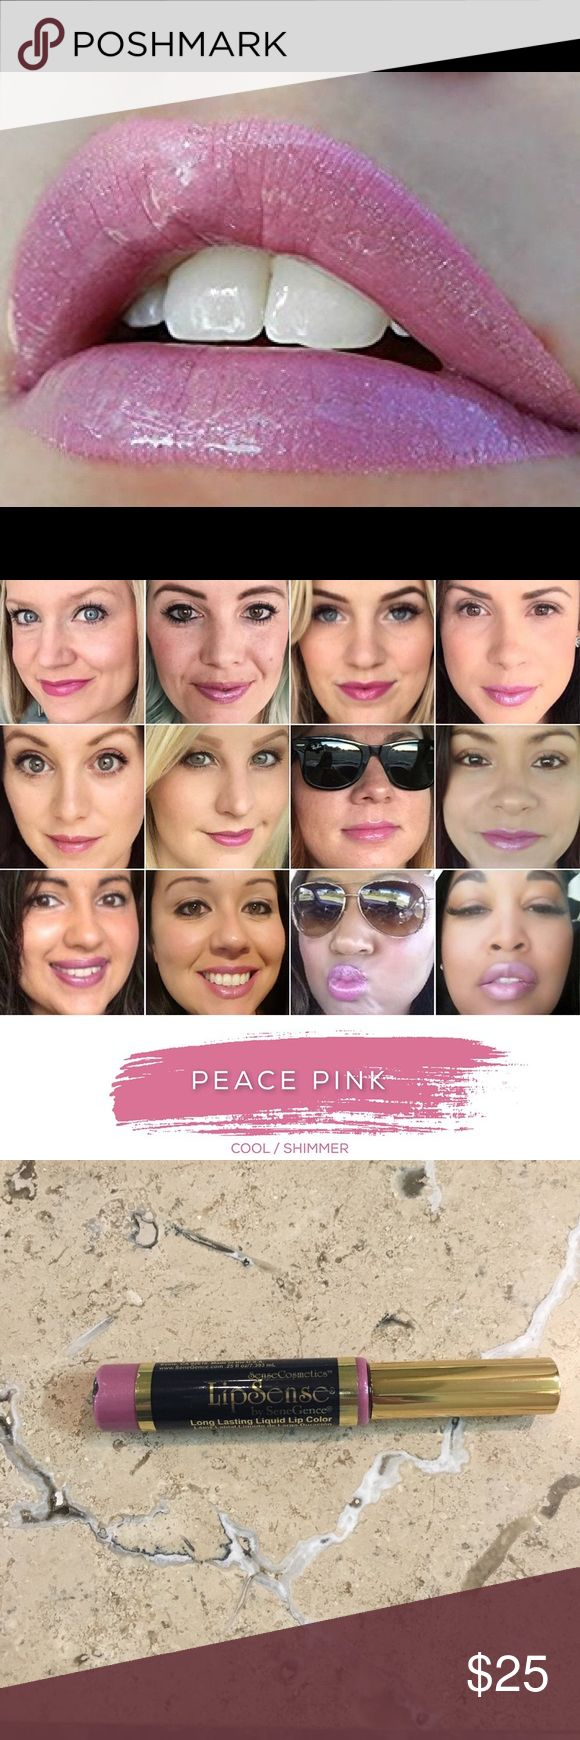 Lipsense PEACE PINK 18 Hour Lipcolor IN STOCK Brand new, sealed!  The hottest Pink for Spring, sold out, so don't miss out! The premier product of Senegence, LipSense lasts all day – up to 18 hours. It is water-proof, kiss-proof, smudge-proof, and completely budge-proof. LipSense comes in a variety of captivating colors and can be layered to produce your own custom look.  Must be worn with a Lipsense gloss.Brand new, sealed!  COMMENT BELOW WITH YOUR EMAIL TO GET DISCOUNT INFORMATION, I…